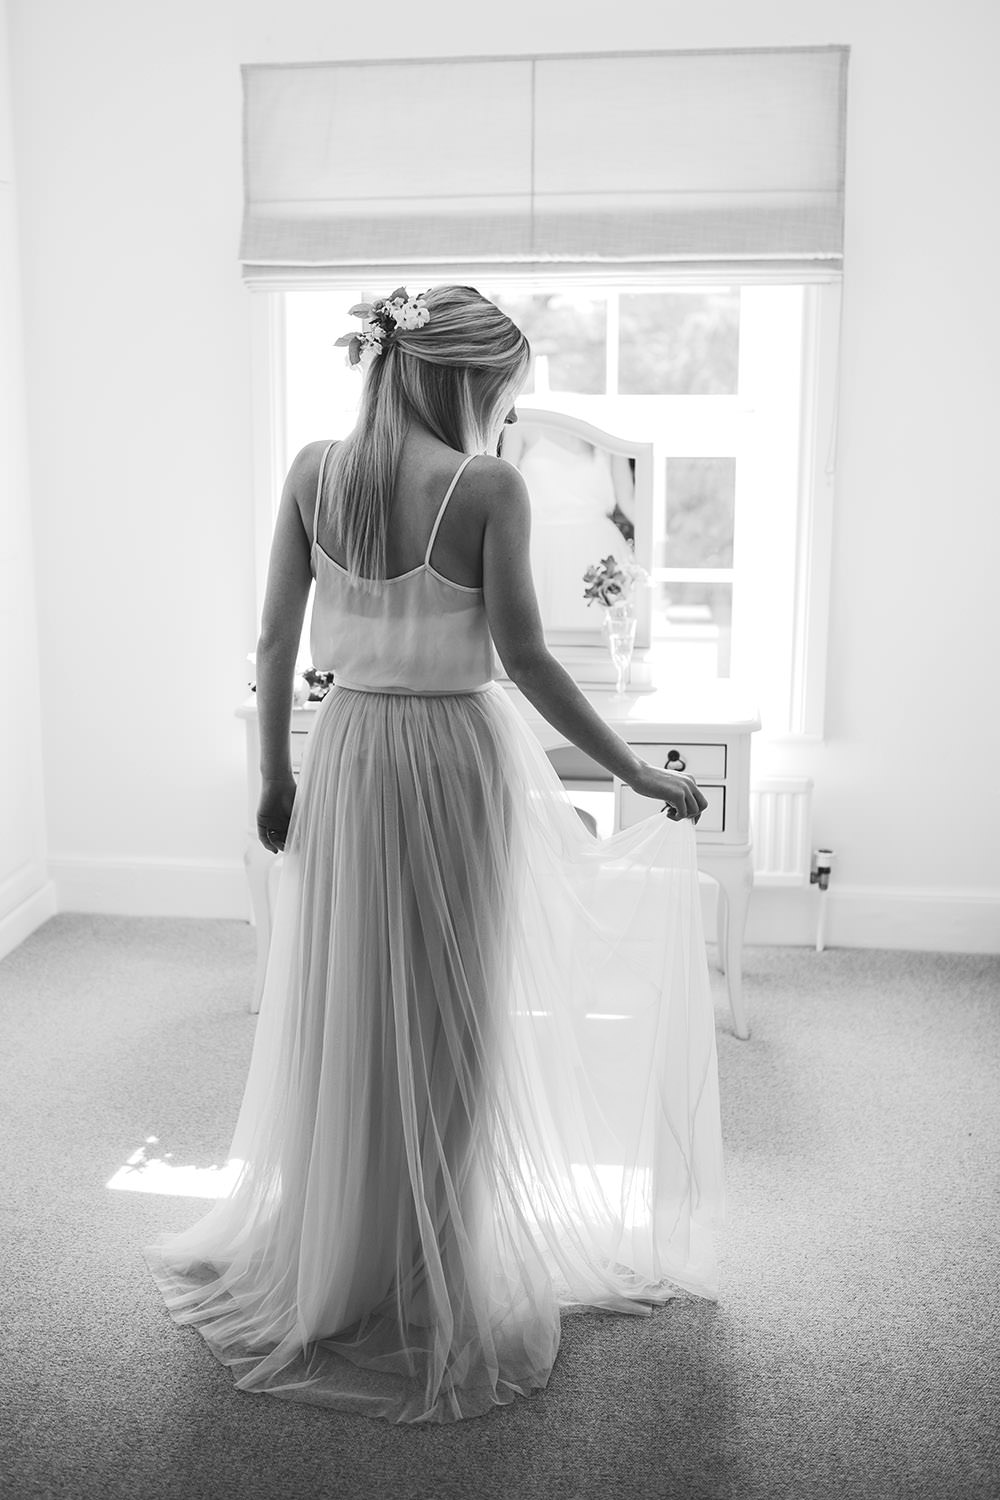 Bride Bridal Prep Morning Dressing Table Tulle Skirt Light Airy Summer Wedding Ideas Charlotte Palazzo Photography